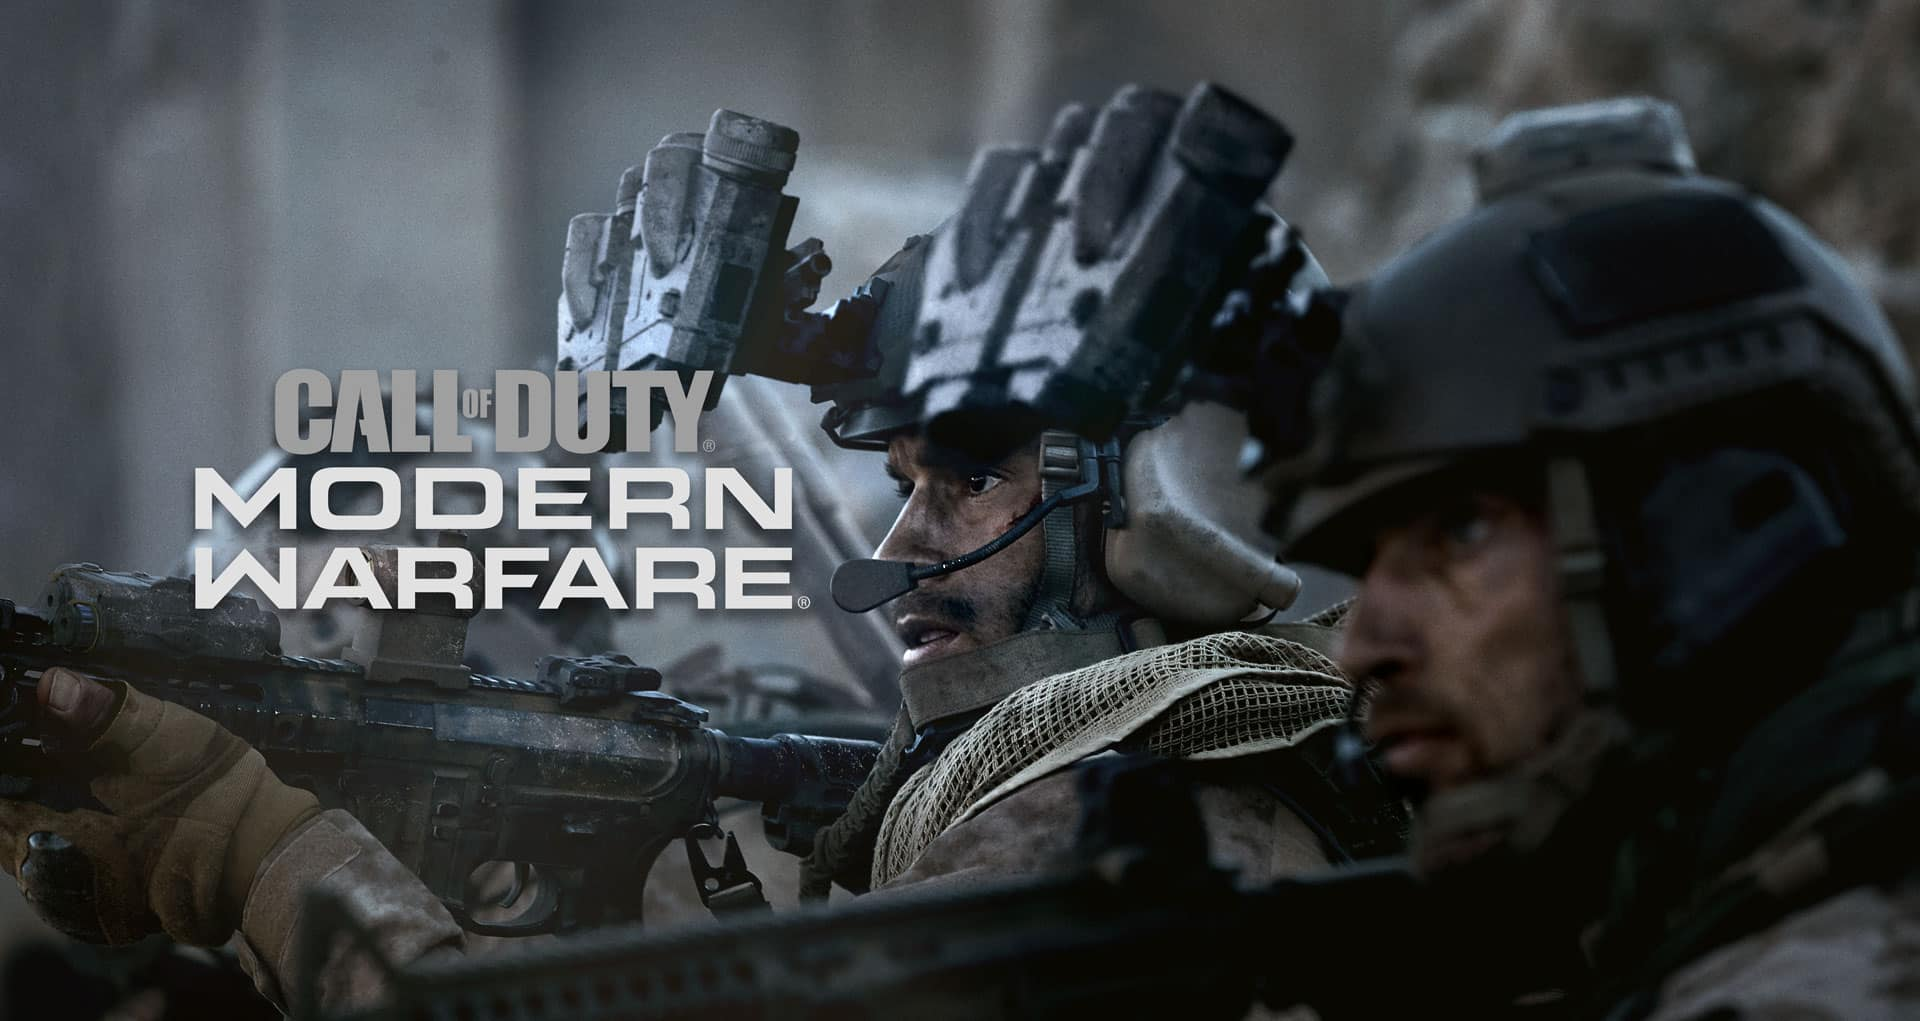 Call of Duty: Modern Warfare HDD space 4K Ultra RTX Ray Tracing Activision Infinity Ward